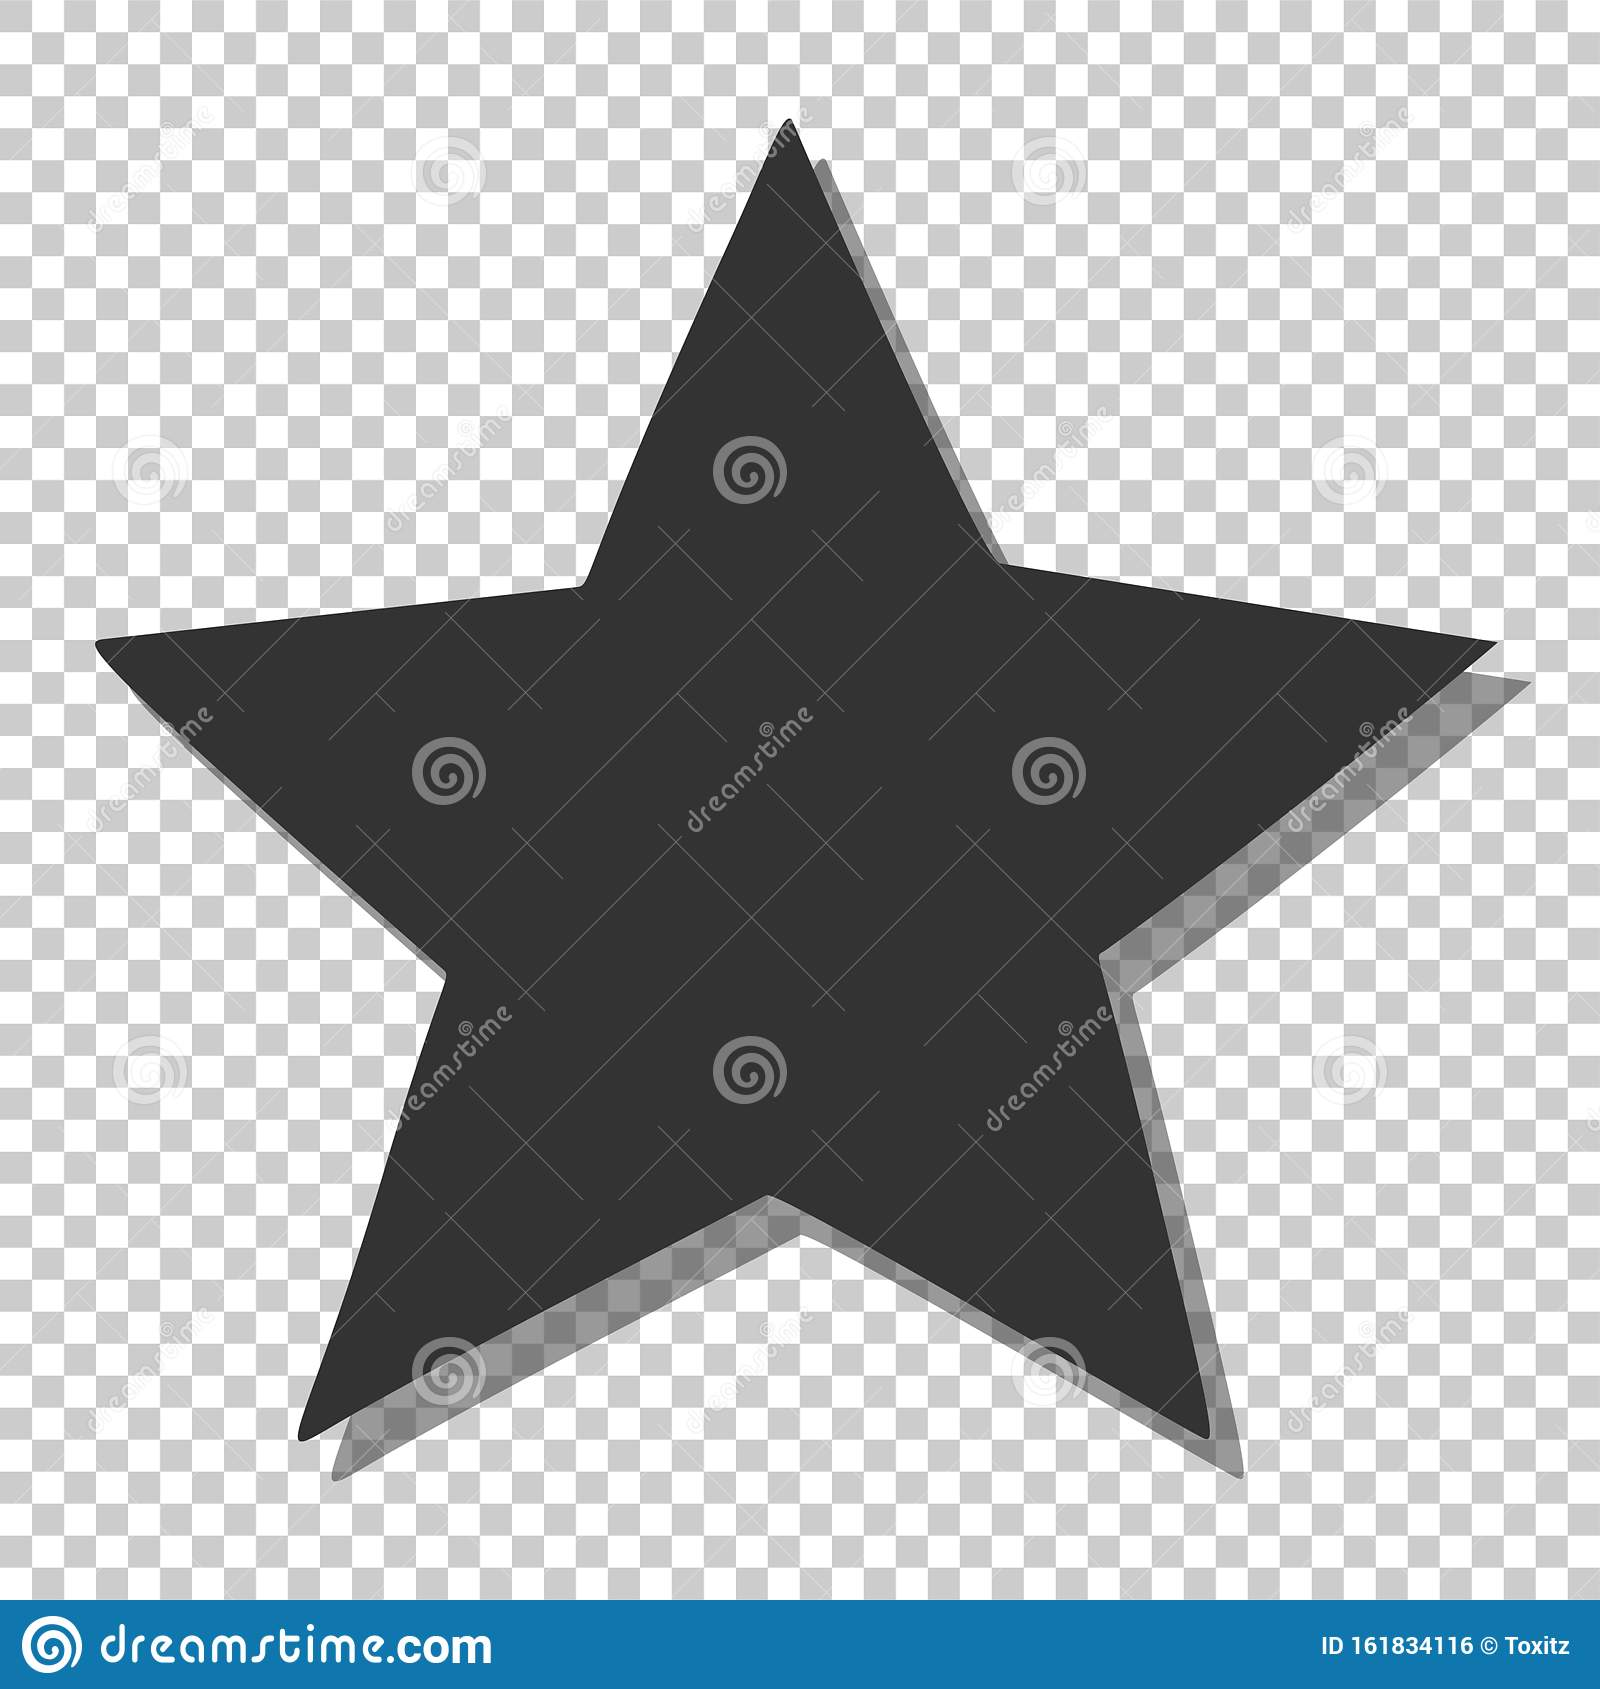 Black star icon. Simple clipart, template for rating, space and sky